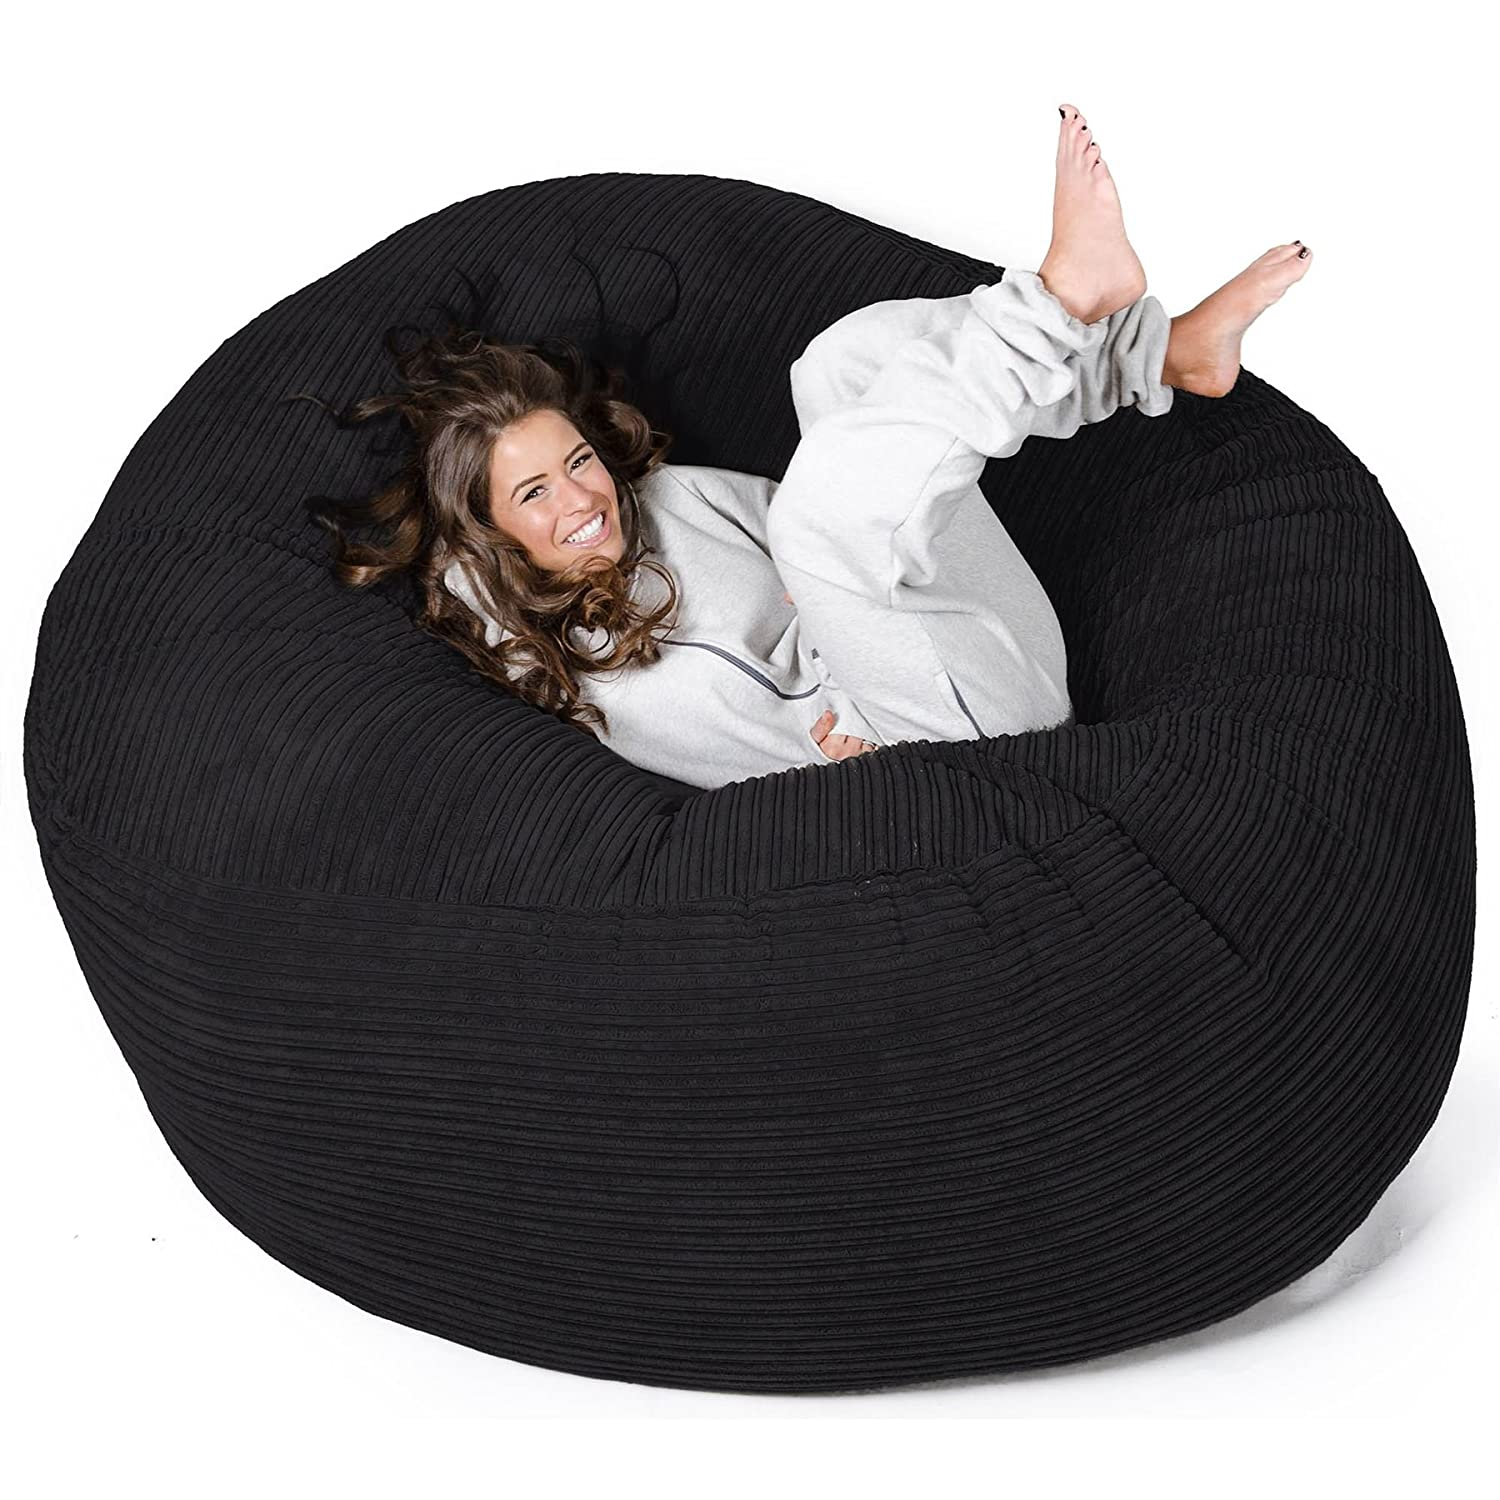 mega mammoth sofa bean bag mink. Black Bedroom Furniture Sets. Home Design Ideas